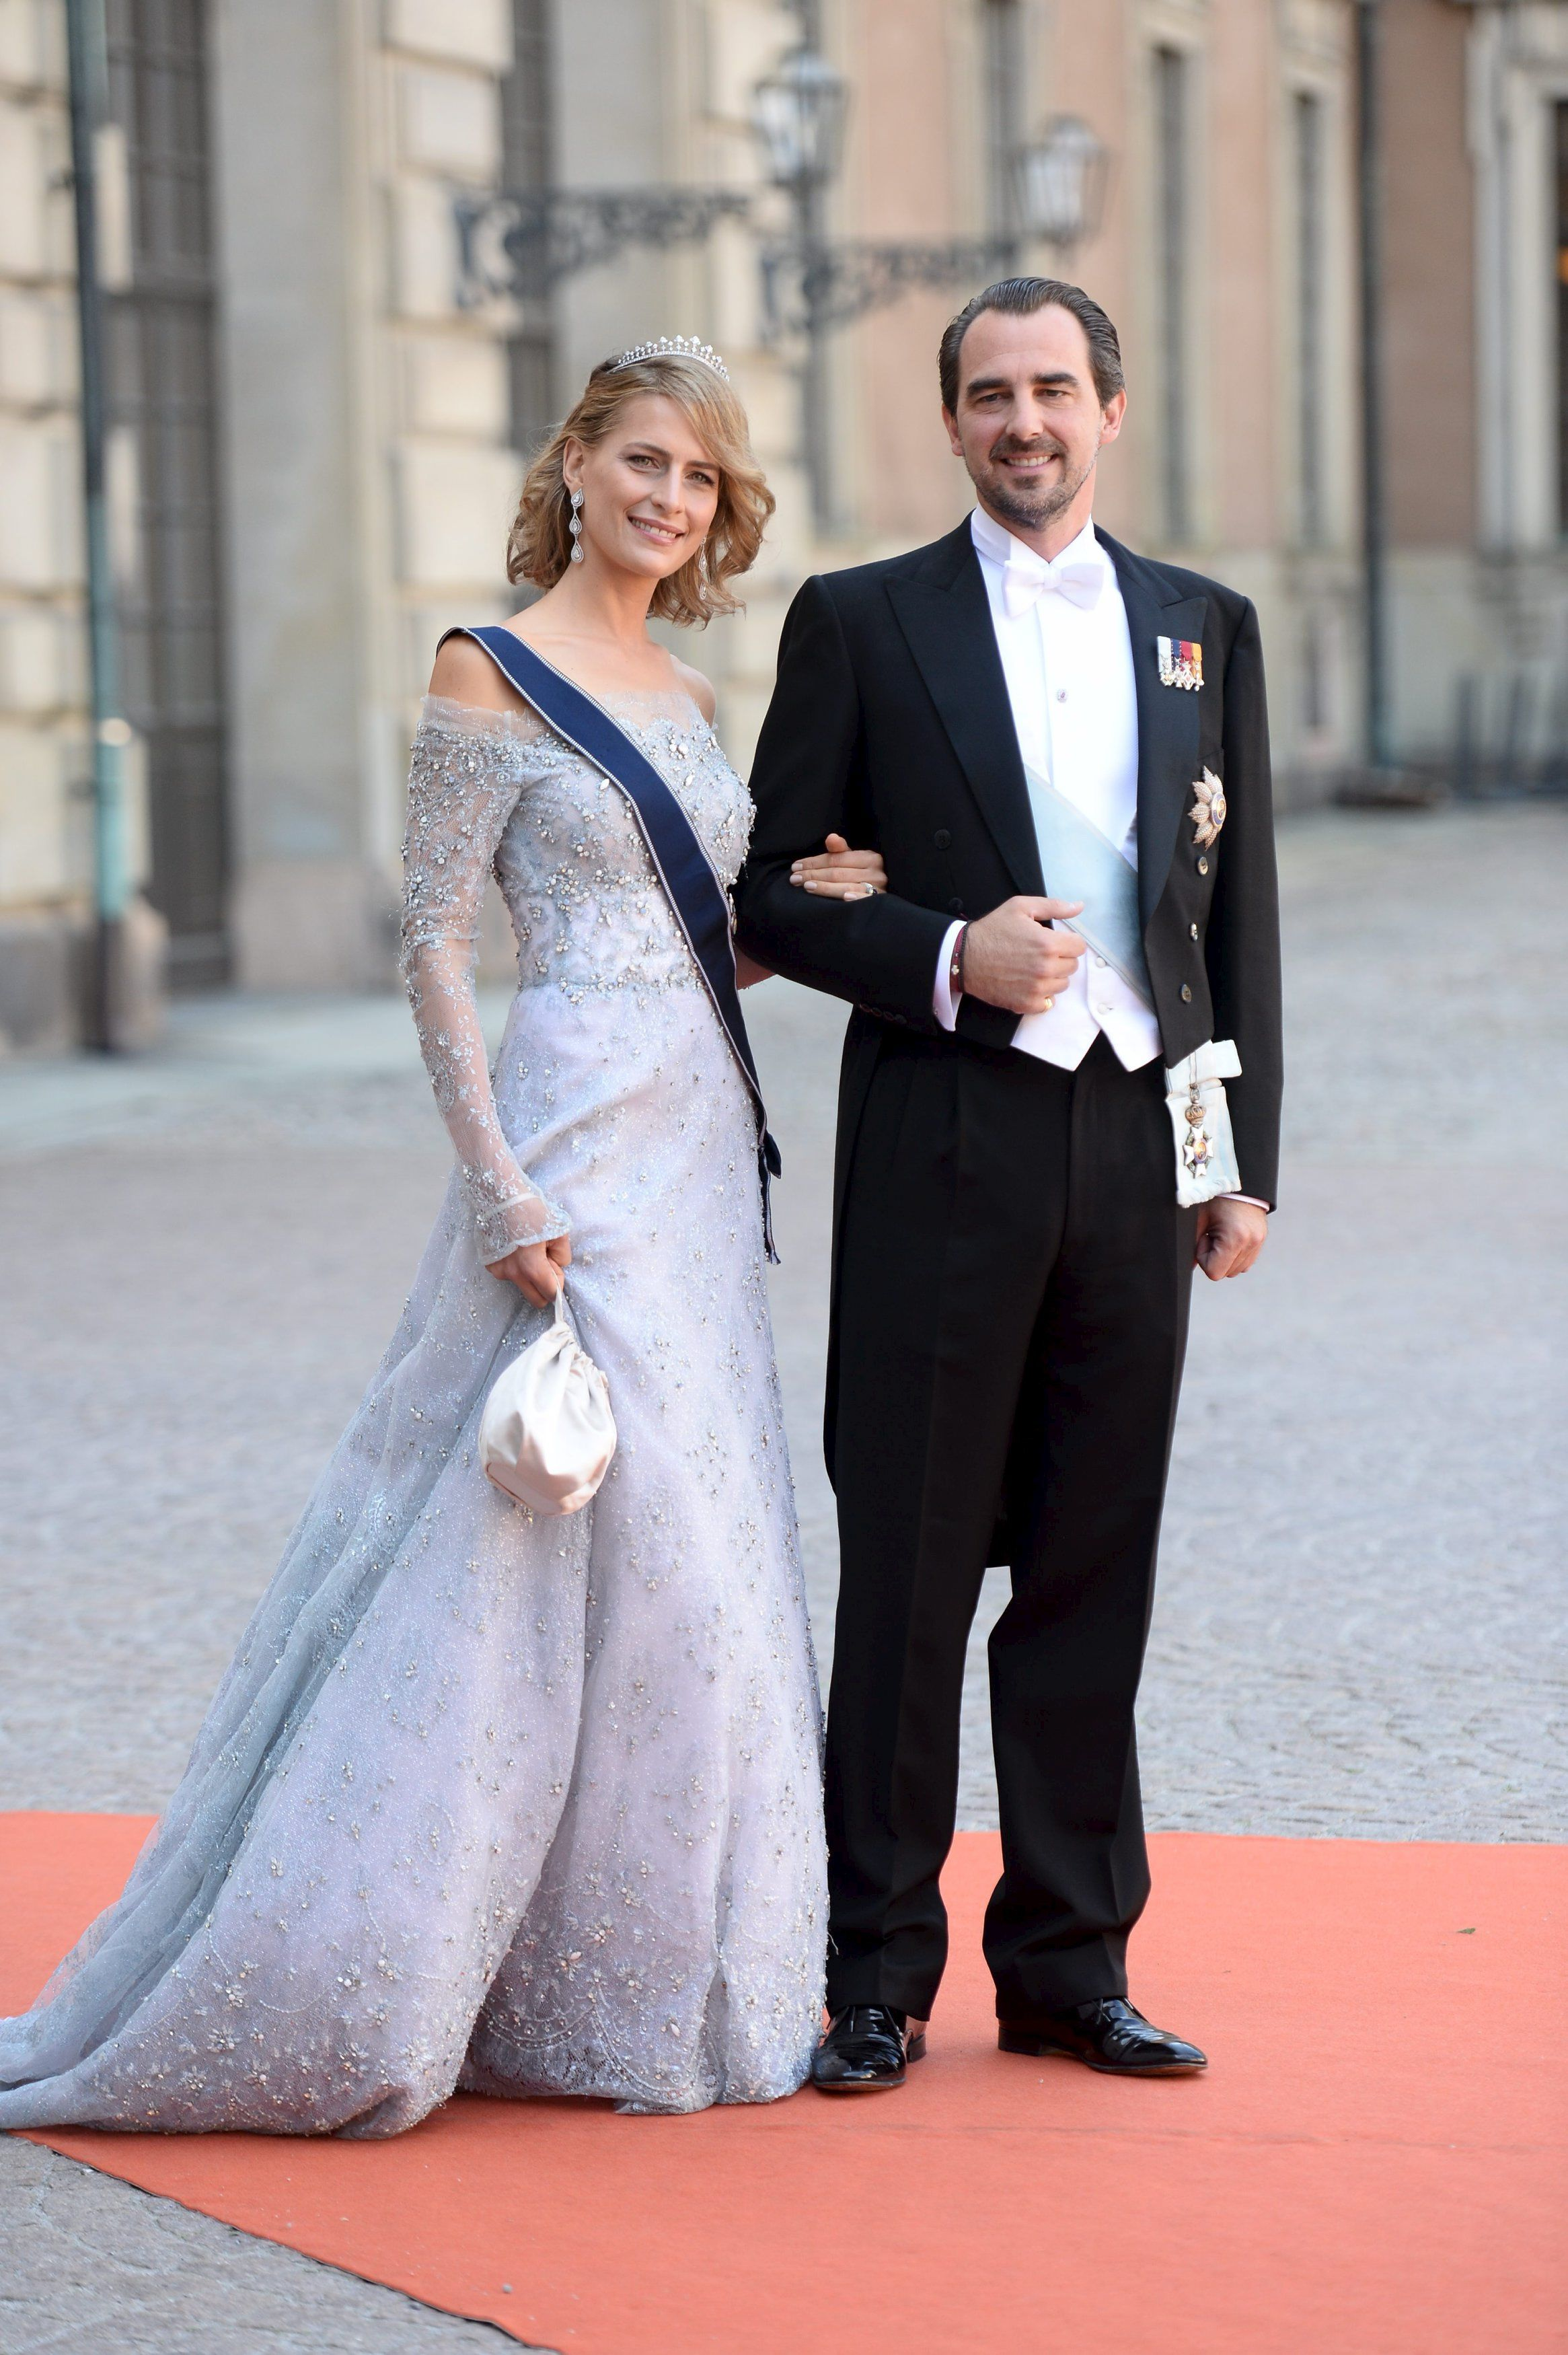 Wedding Of Prince Carl Philip And Sofia Hellqvist Arrival Of The Guests Prince Wedding Prince Carl Philip Royal Wedding